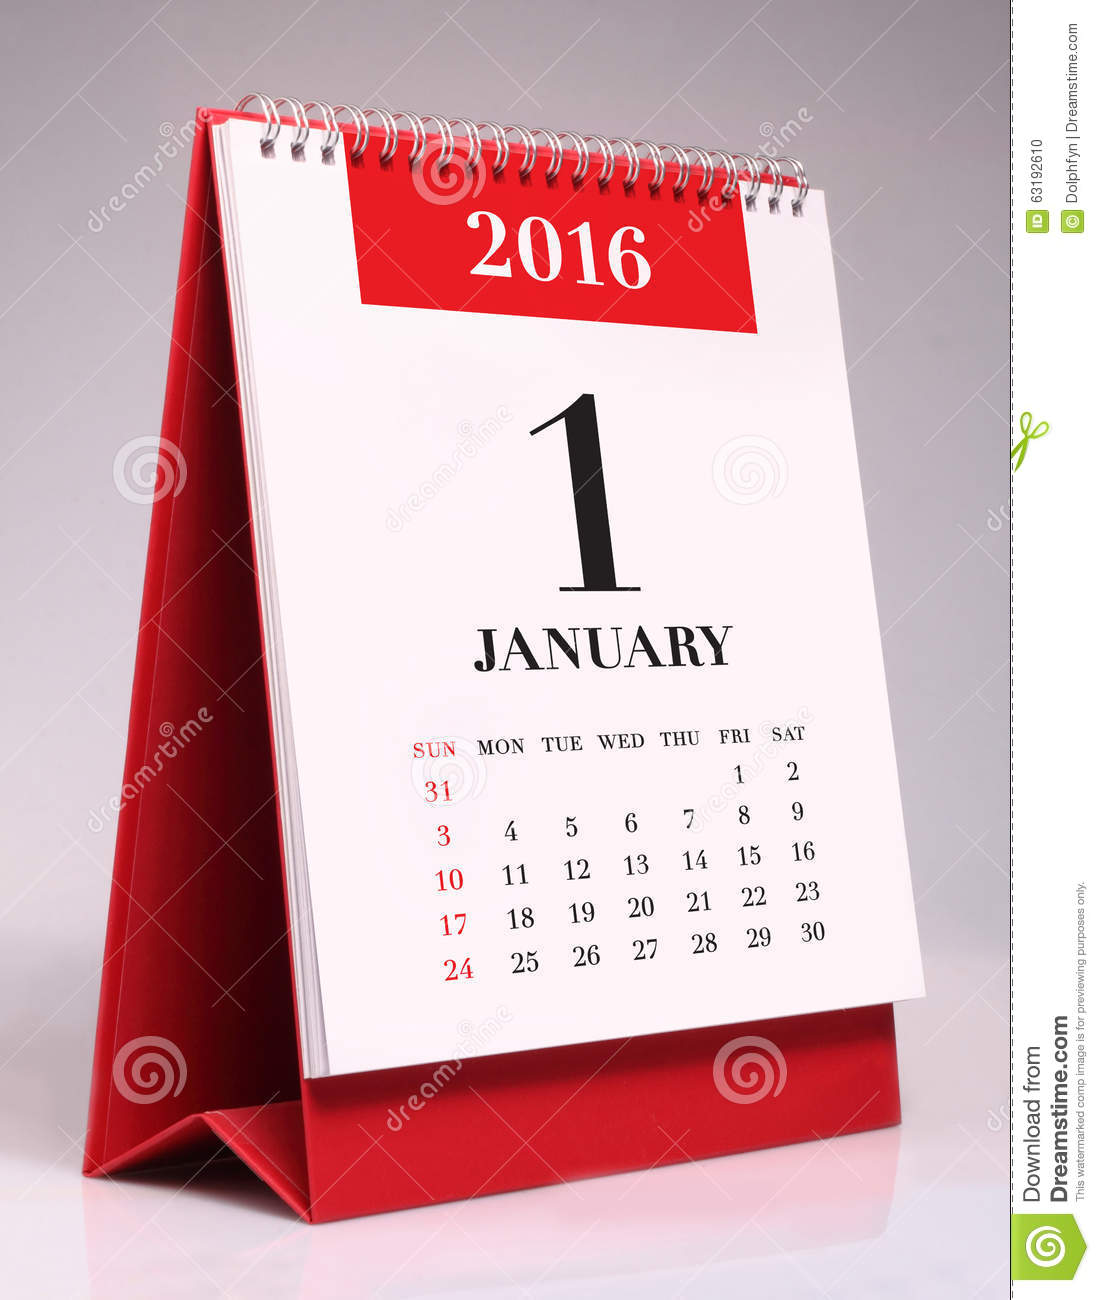 Calendrier de bureau simple 2016 janvier photo stock image du jour bureau 63192610 - Calendrier de bureau photo ...